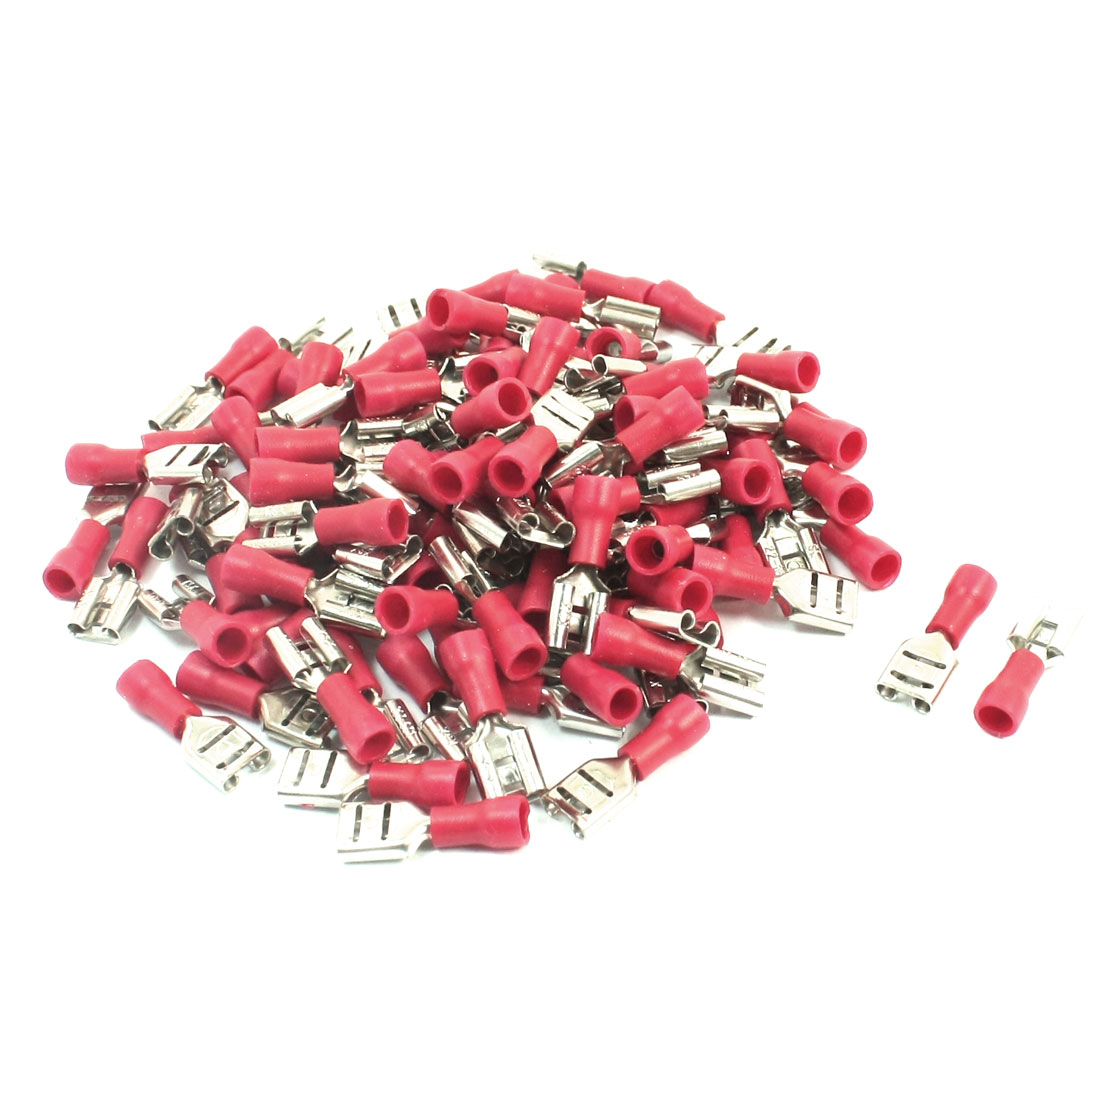 100 Pcs FDD1.25-250 22-16AWG Wire Cable Connect Red PVC Sleeve Rewirable Semi Insulated Female Crimp Terminal Connector